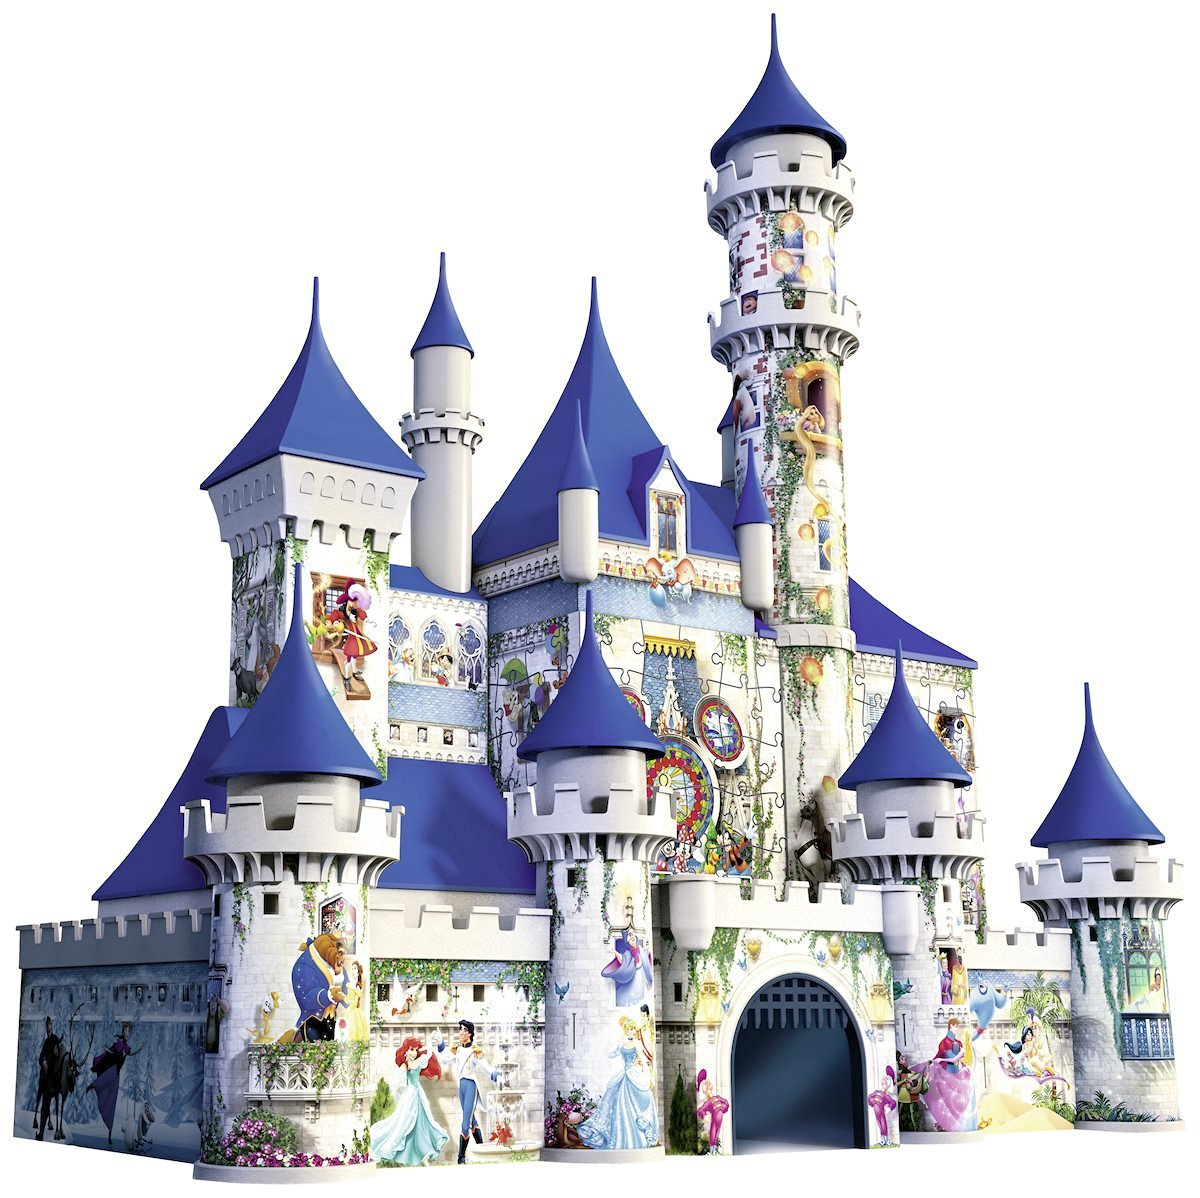 puzzle 3d ch teau de disney ravensburger 12587 216 pi ces puzzles ch teaux et palaces. Black Bedroom Furniture Sets. Home Design Ideas